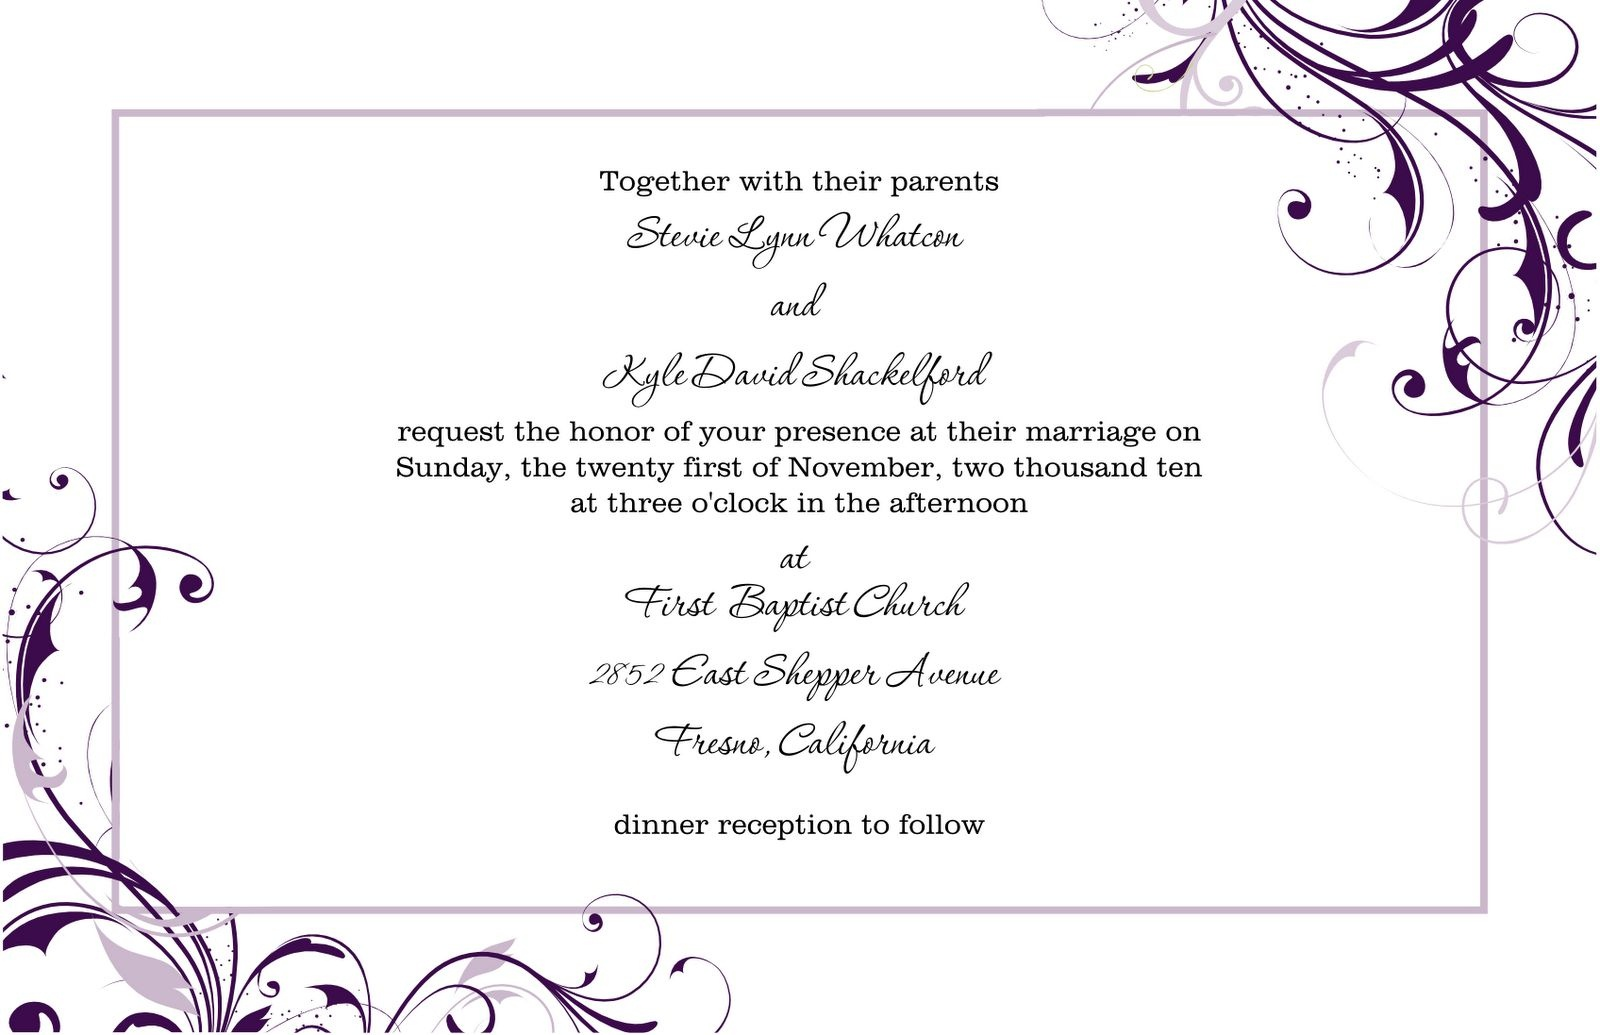 Free Wedding Invitation Templates For Word | Marina Gallery Fine Art - Free Printable Wedding Invitation Templates For Word